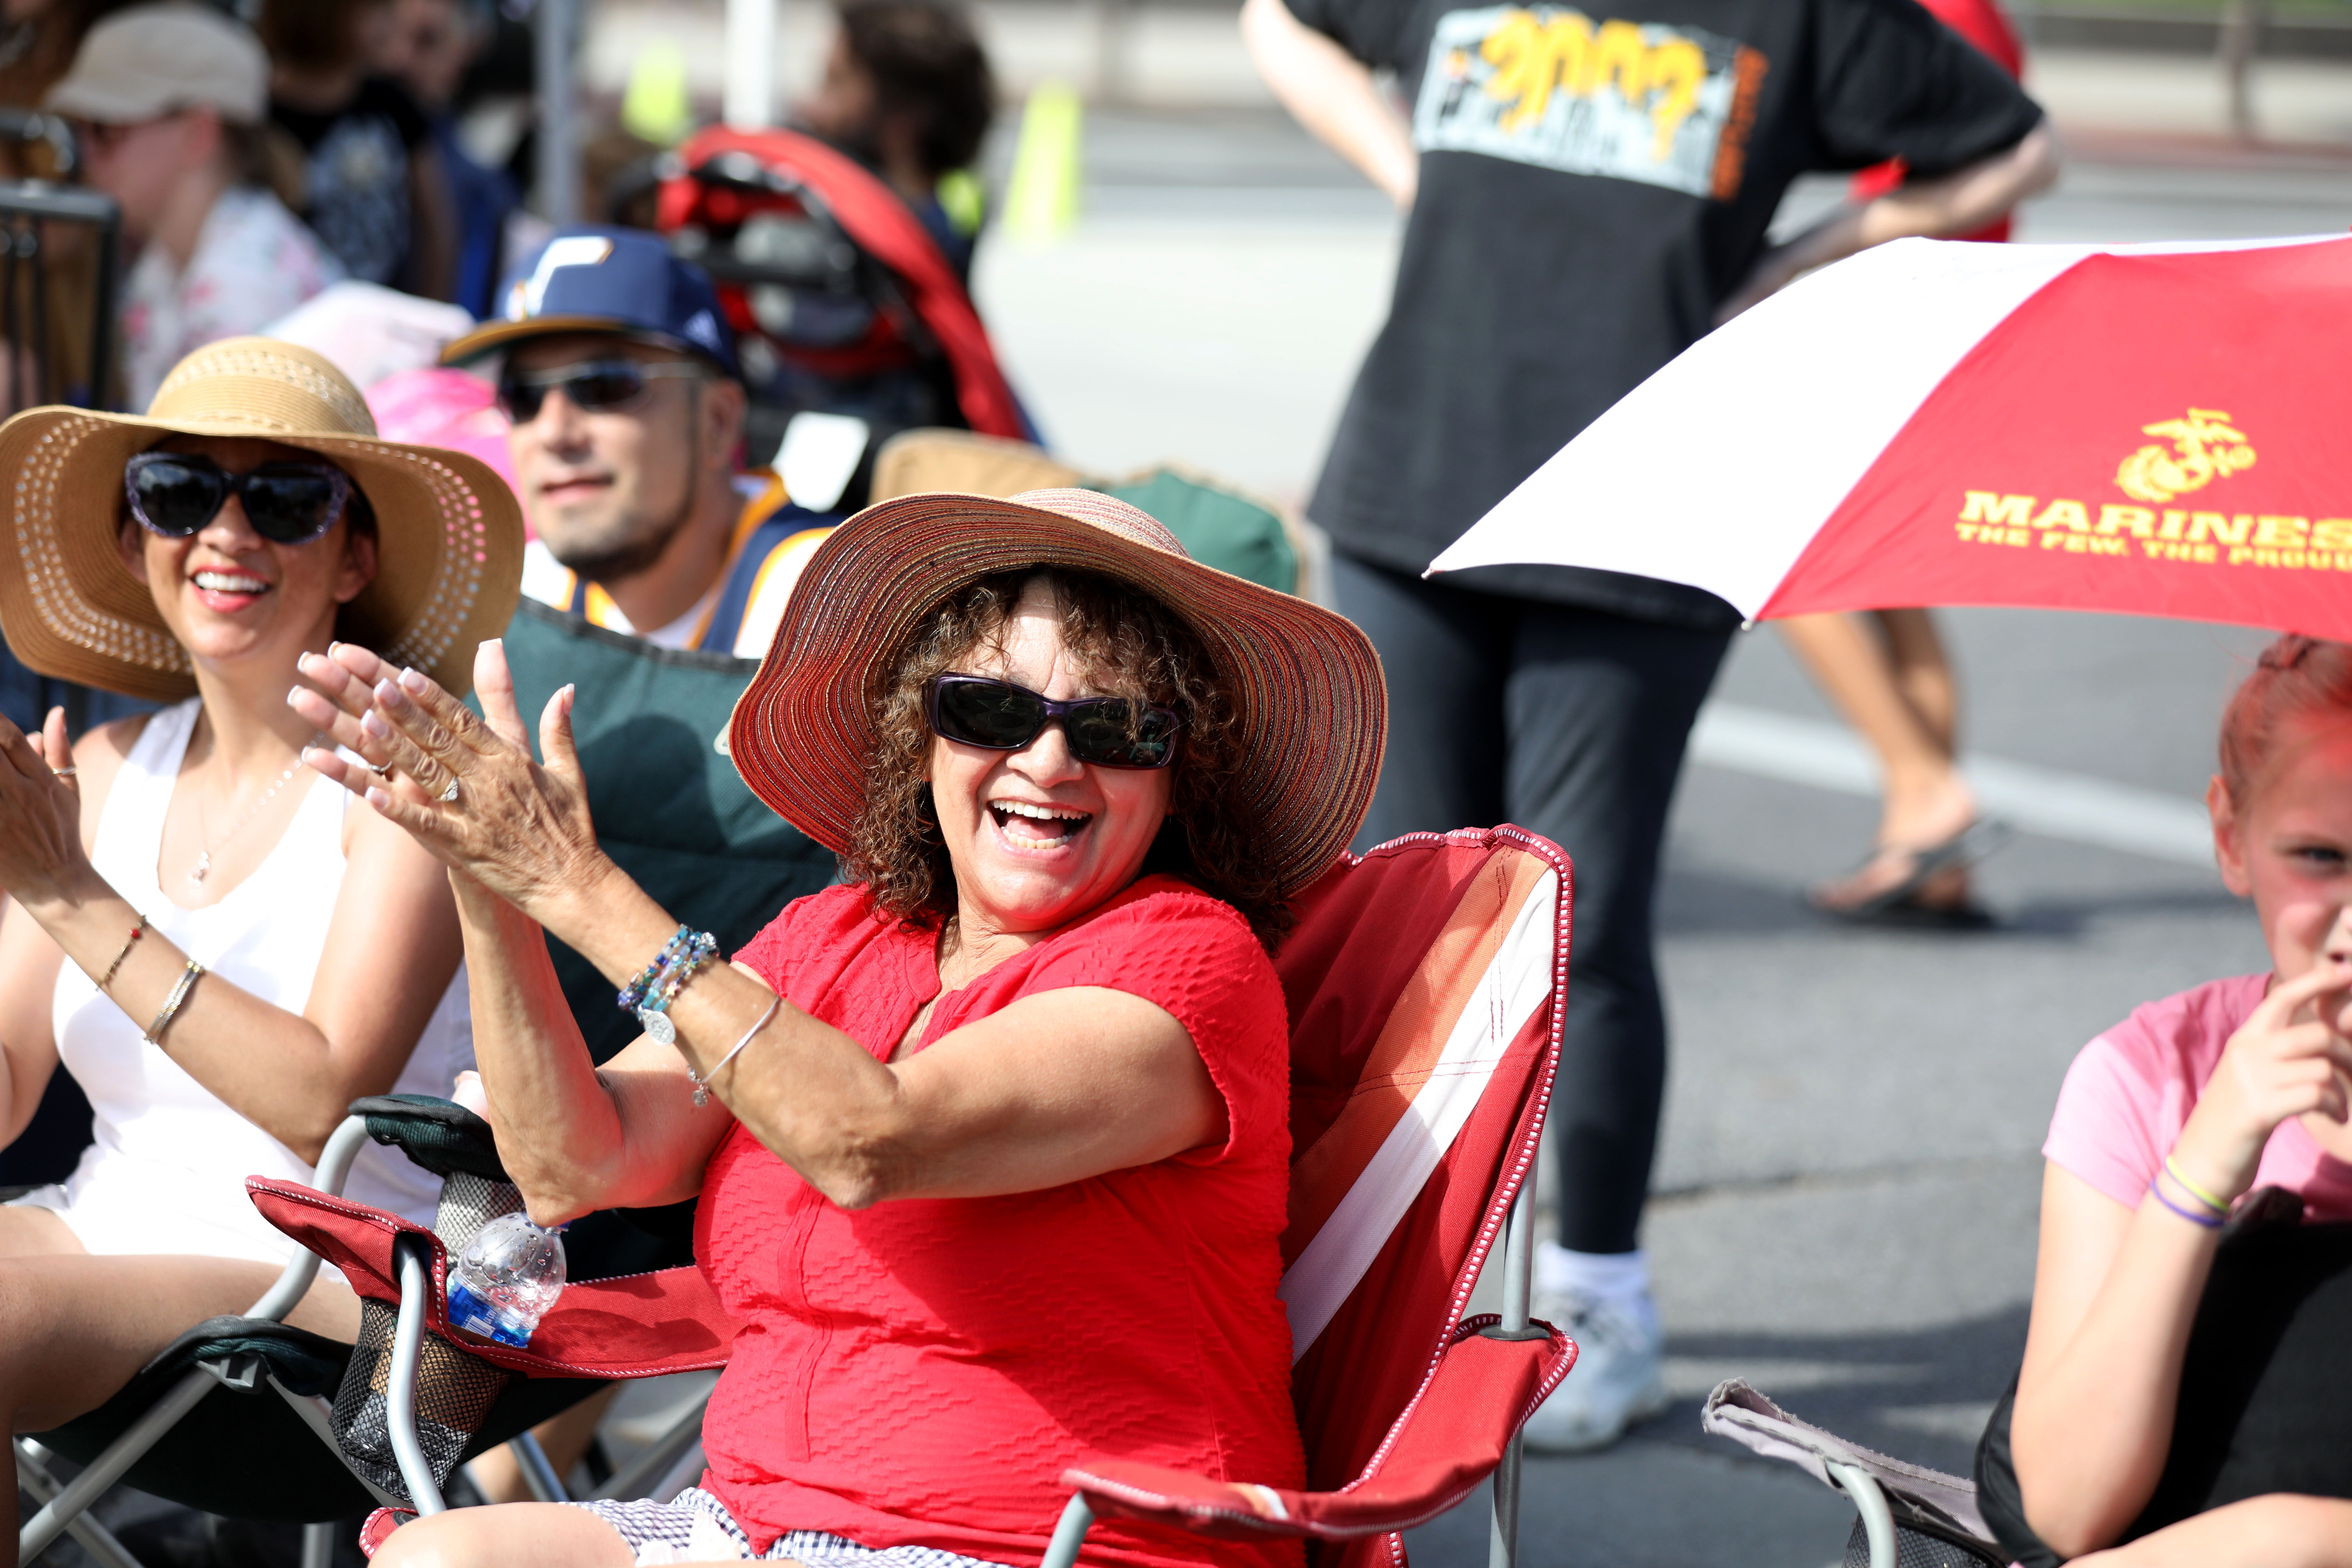 The crowd applauds during the Days of '47 Parade in Salt Lake City on Wednesday, July 24, 2019.